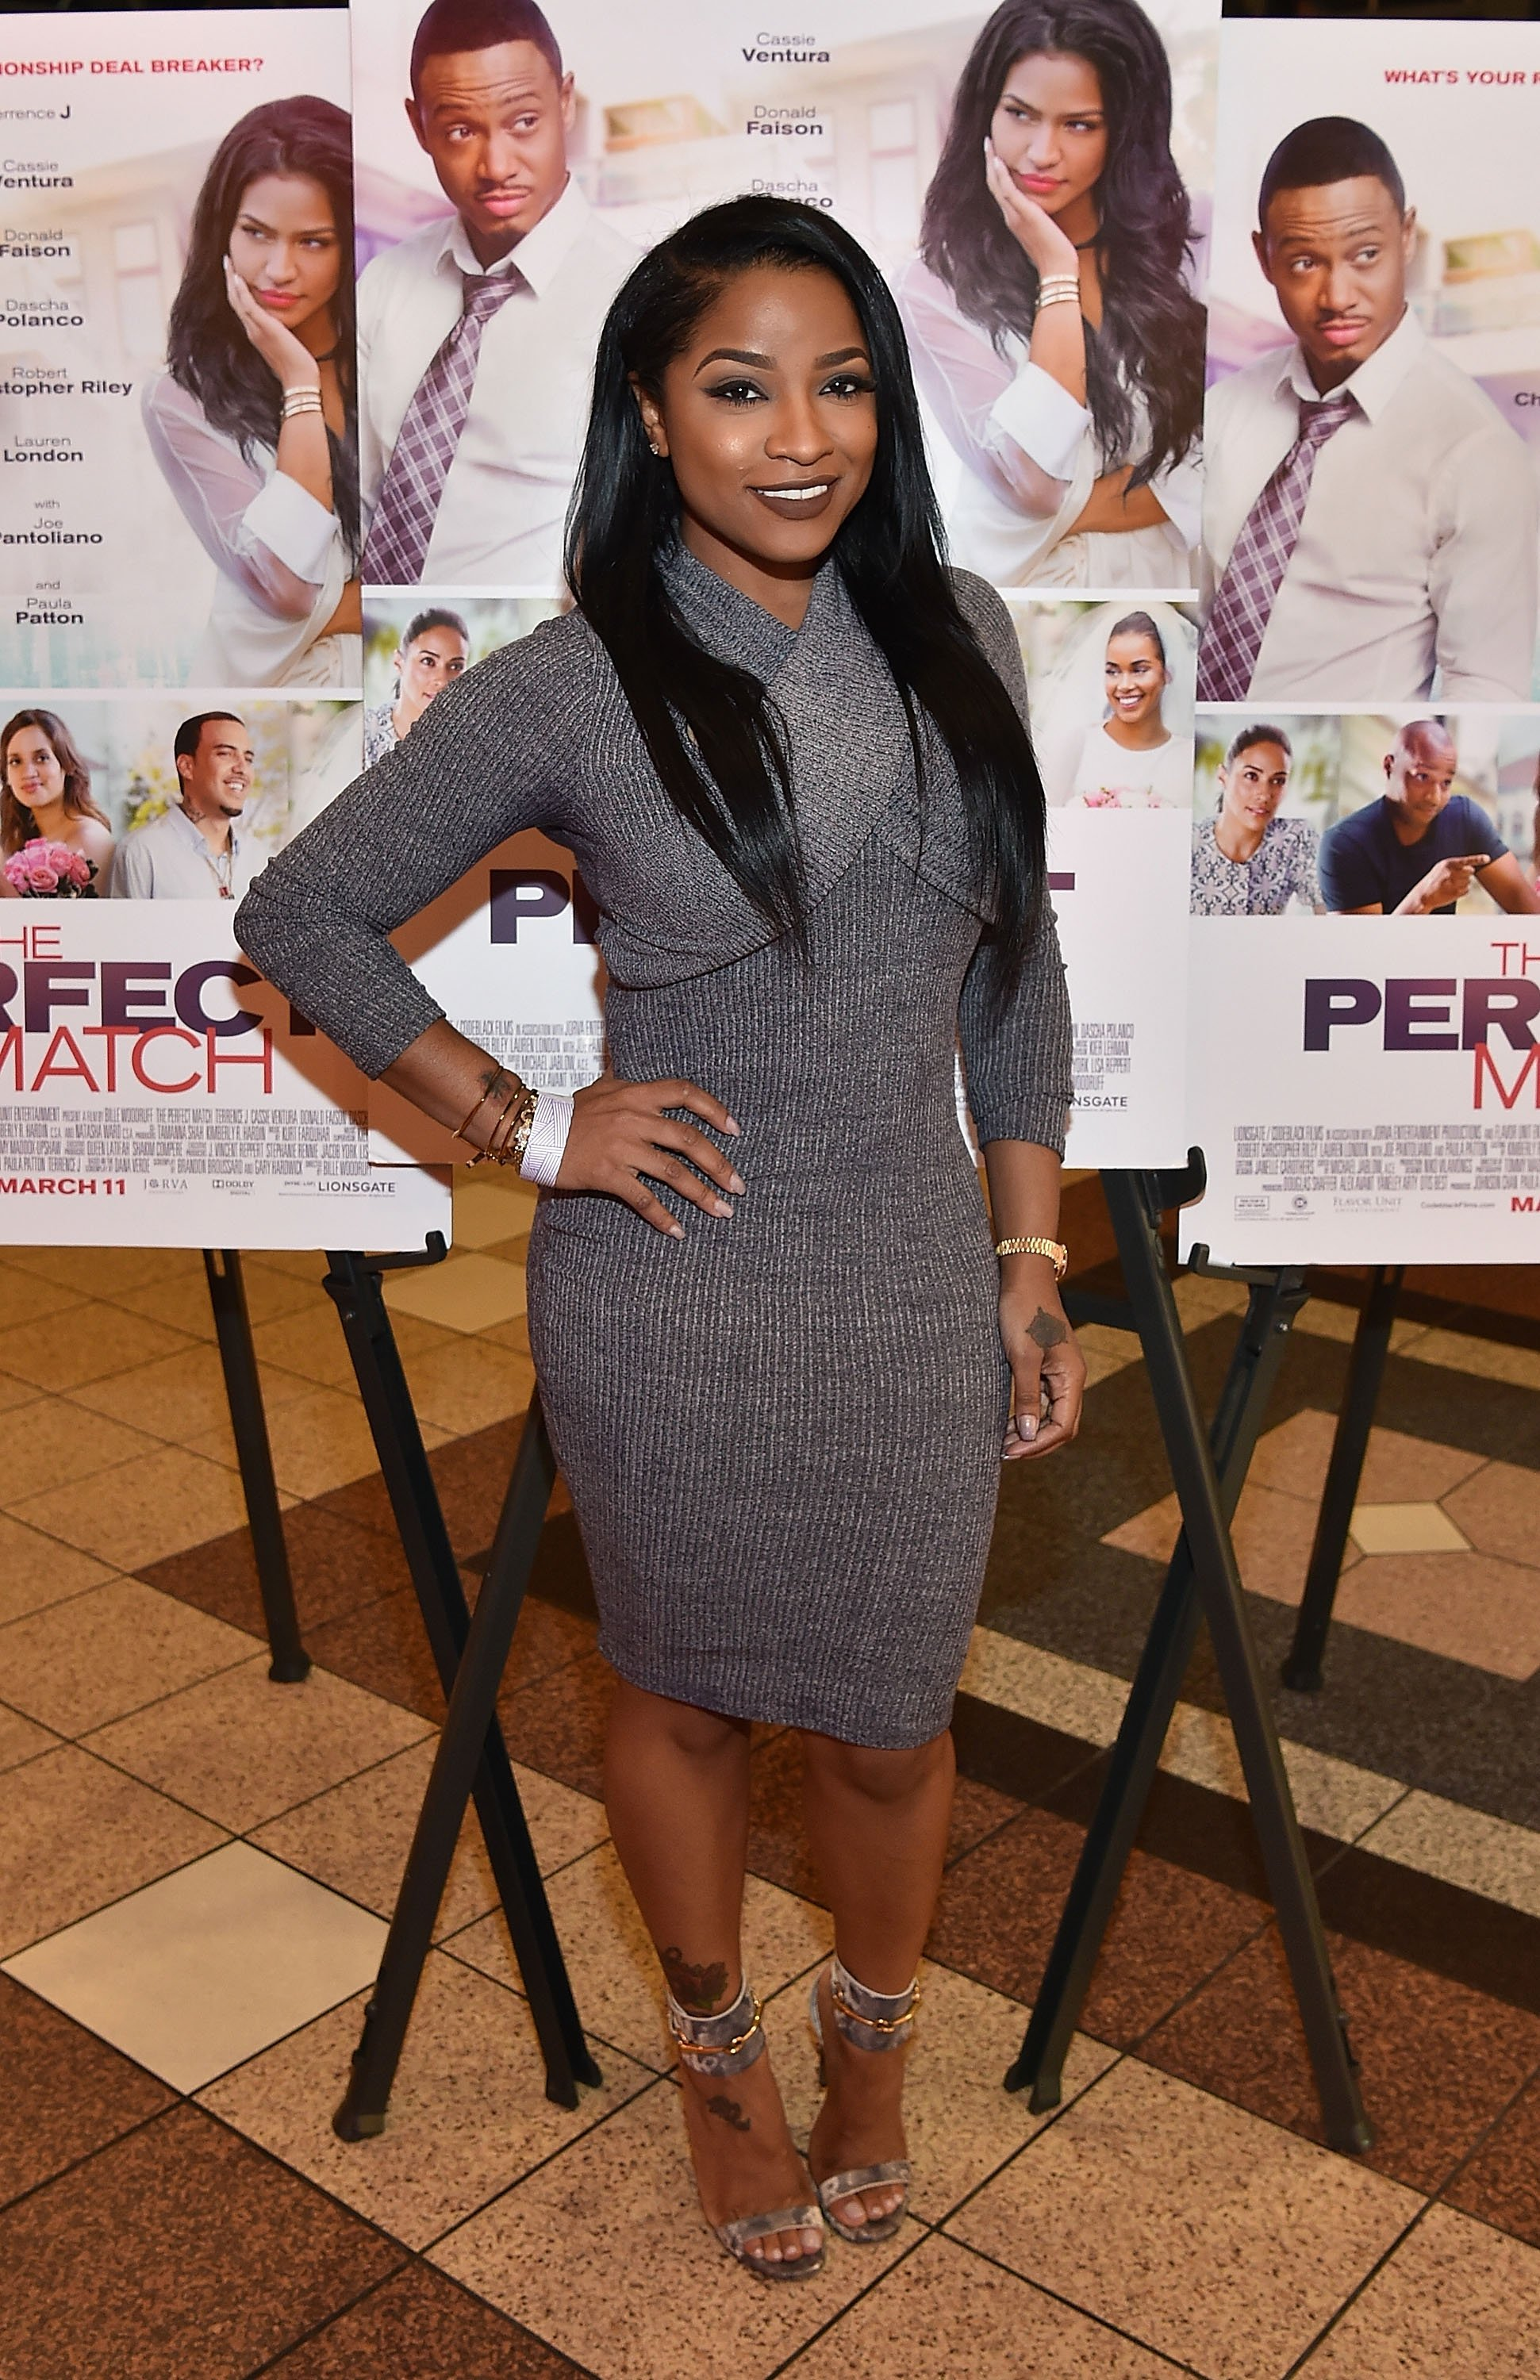 """Toya Wright at """"The Perfect Match"""" advance screening in Atlanta, Georgia on Mar. 8, 2016 